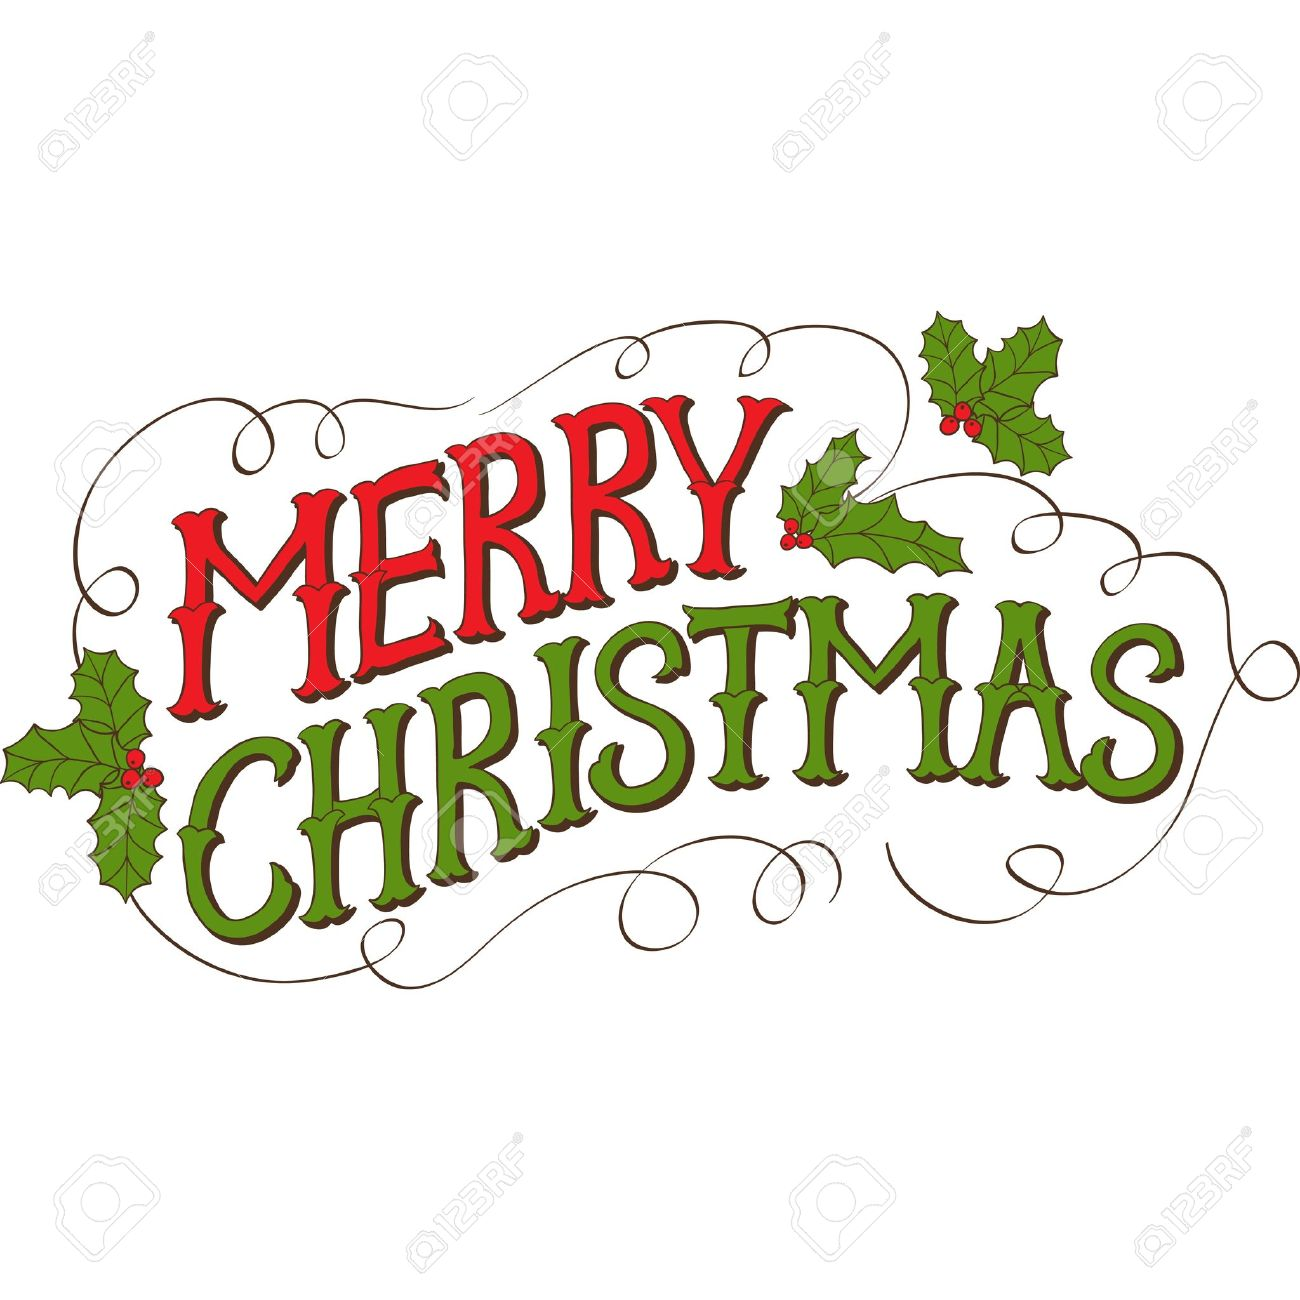 Merry Christmas Greetings Clip Art Awesome Graphic Library